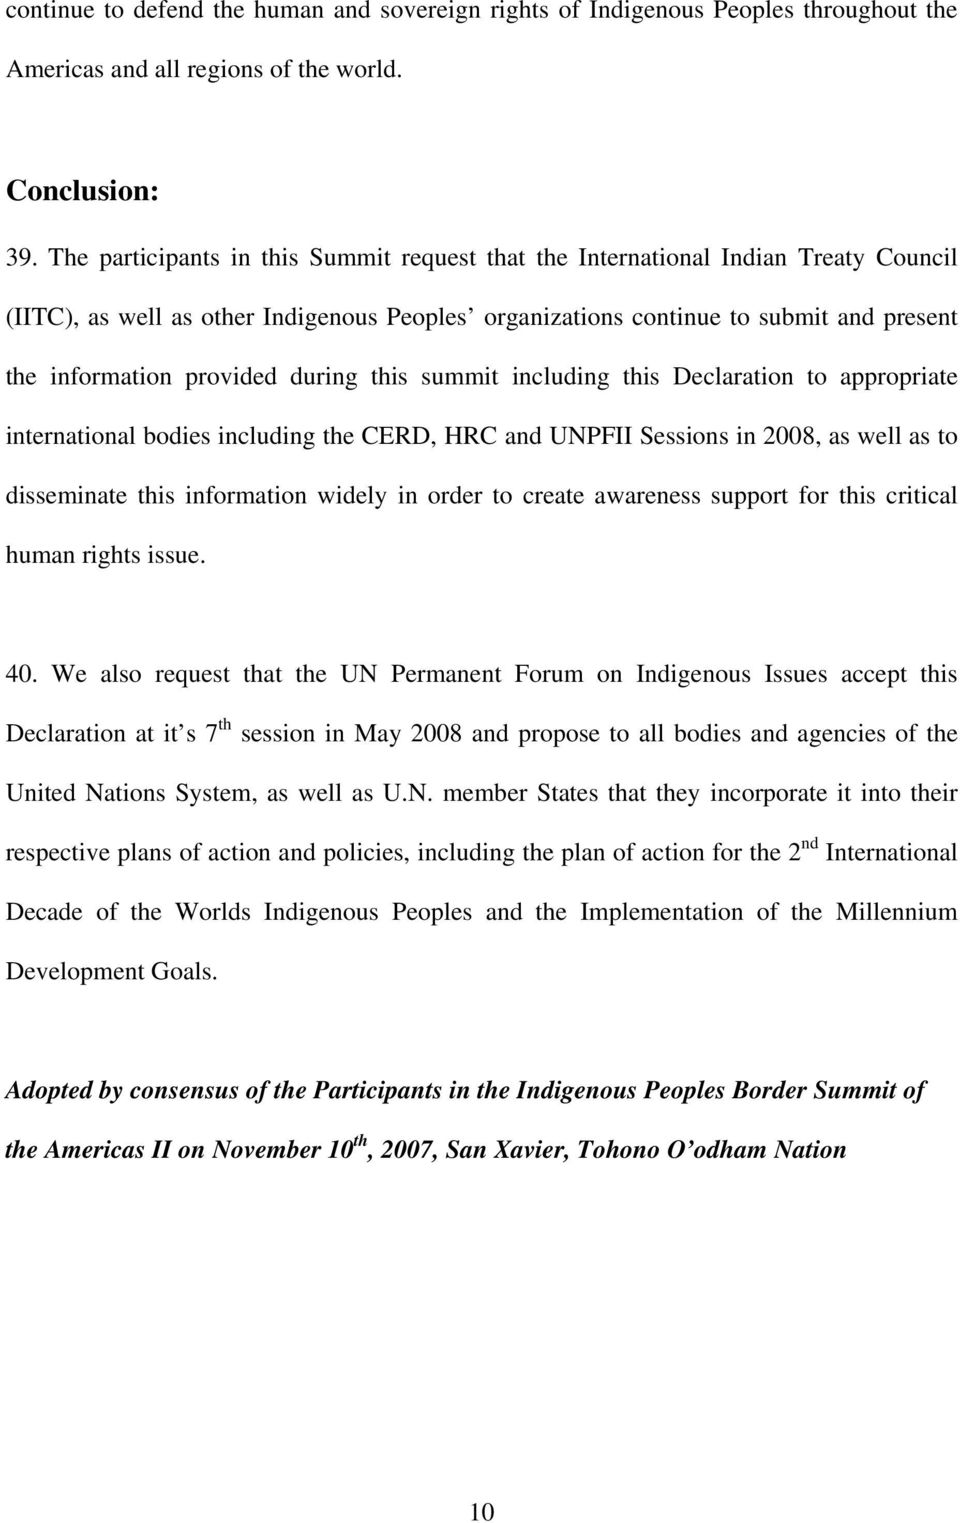 during this summit including this Declaration to appropriate international bodies including the CERD, HRC and UNPFII Sessions in 2008, as well as to disseminate this information widely in order to